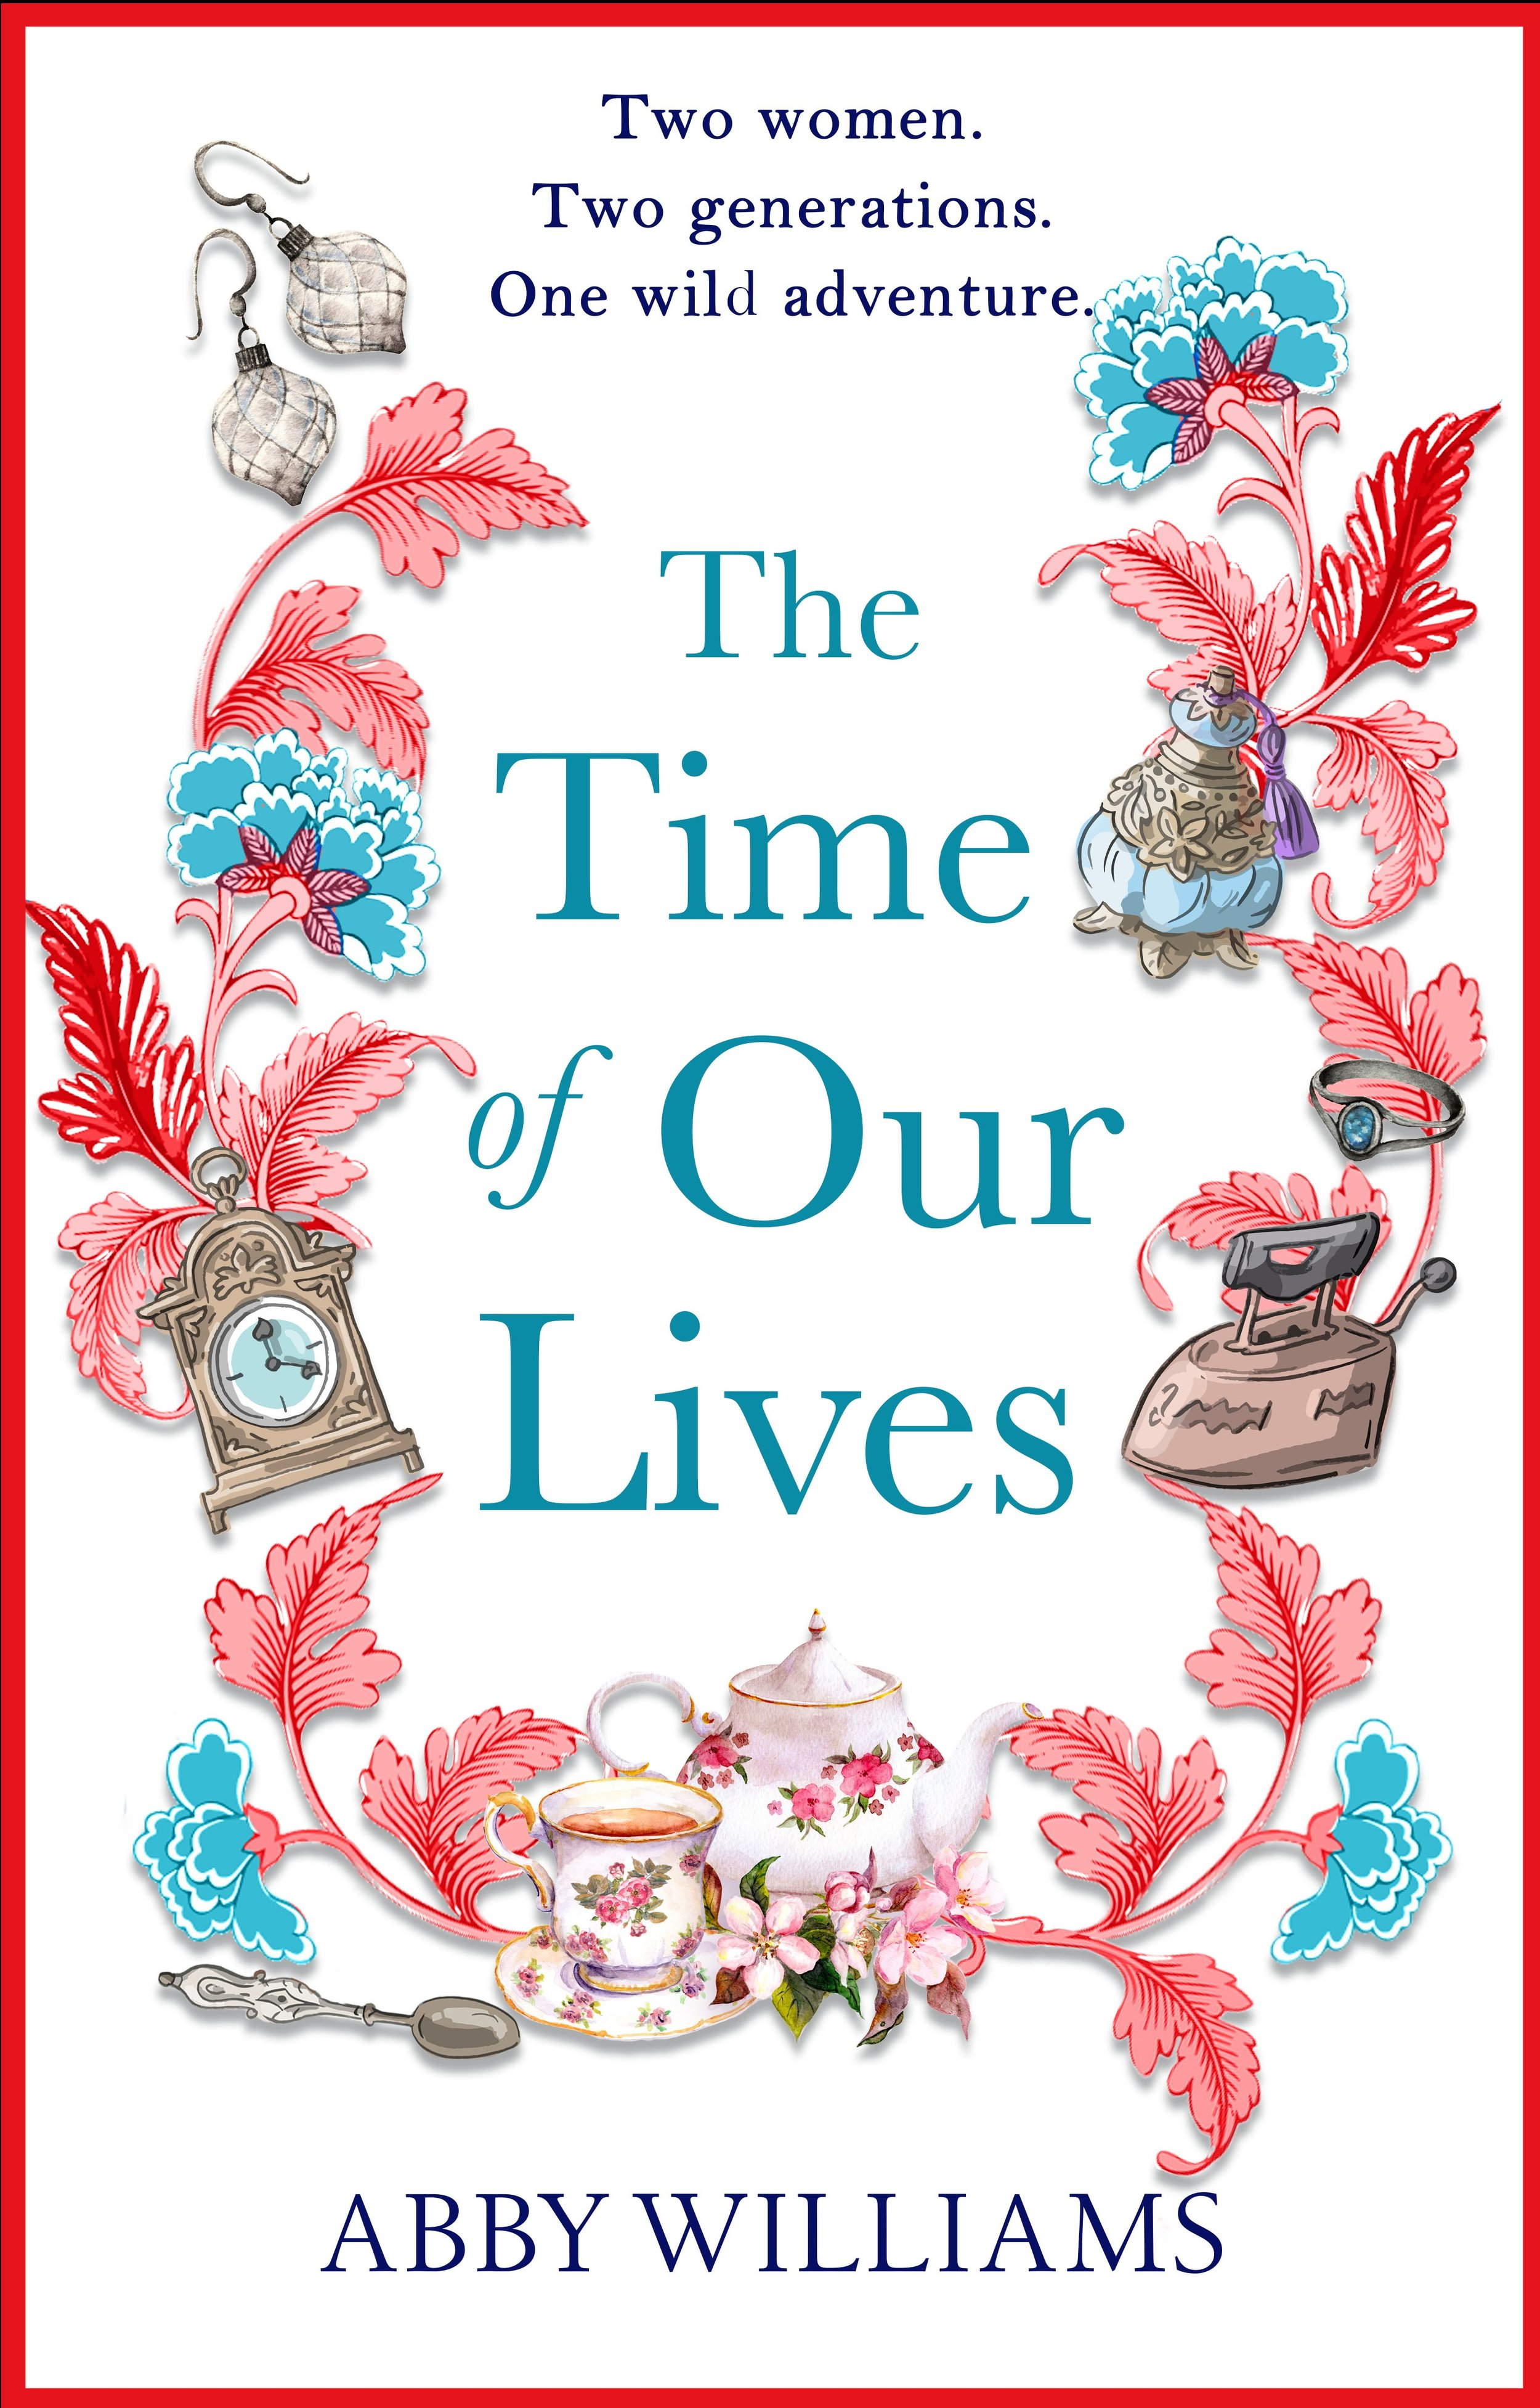 THE TIME OF OUR LIVES Women's Fiction, 377 pages, Aria, August 2019  Twenty-six-year-old Erin has everything she's ever wanted – a good job, a gorgeous fiancé and a best friend who's always there for her. But suddenly her life comes crashing down around her. Unable to return home to her parents, she takes a room in a house nearby and her life starts over in the most unexpected of ways... Seventy-six-year-old Lydia, who, shocked by the sudden death of her husband, is devastated to discover that he has left her in crippling debt. With no choice but to take in a lodger, Erin comes into her life. When they find a letter hidden in the attic old secrets come to light and, with Erin by her side, Lydia finds herself going on a trip of a